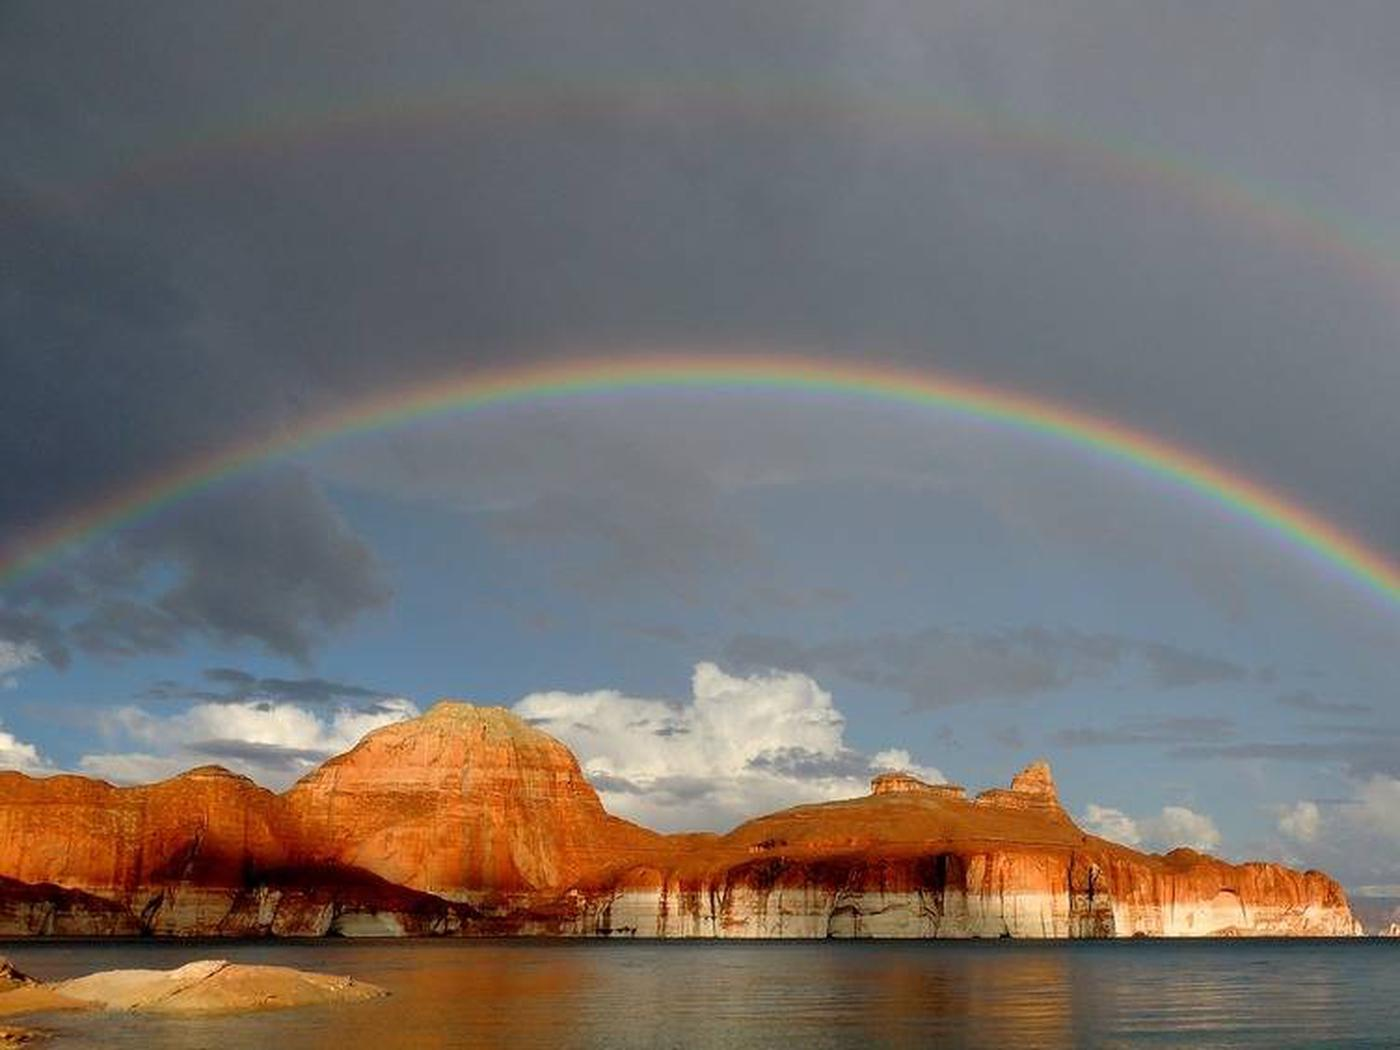 Rainbow over rock formationRainbow over a Glen Canyon rock formation